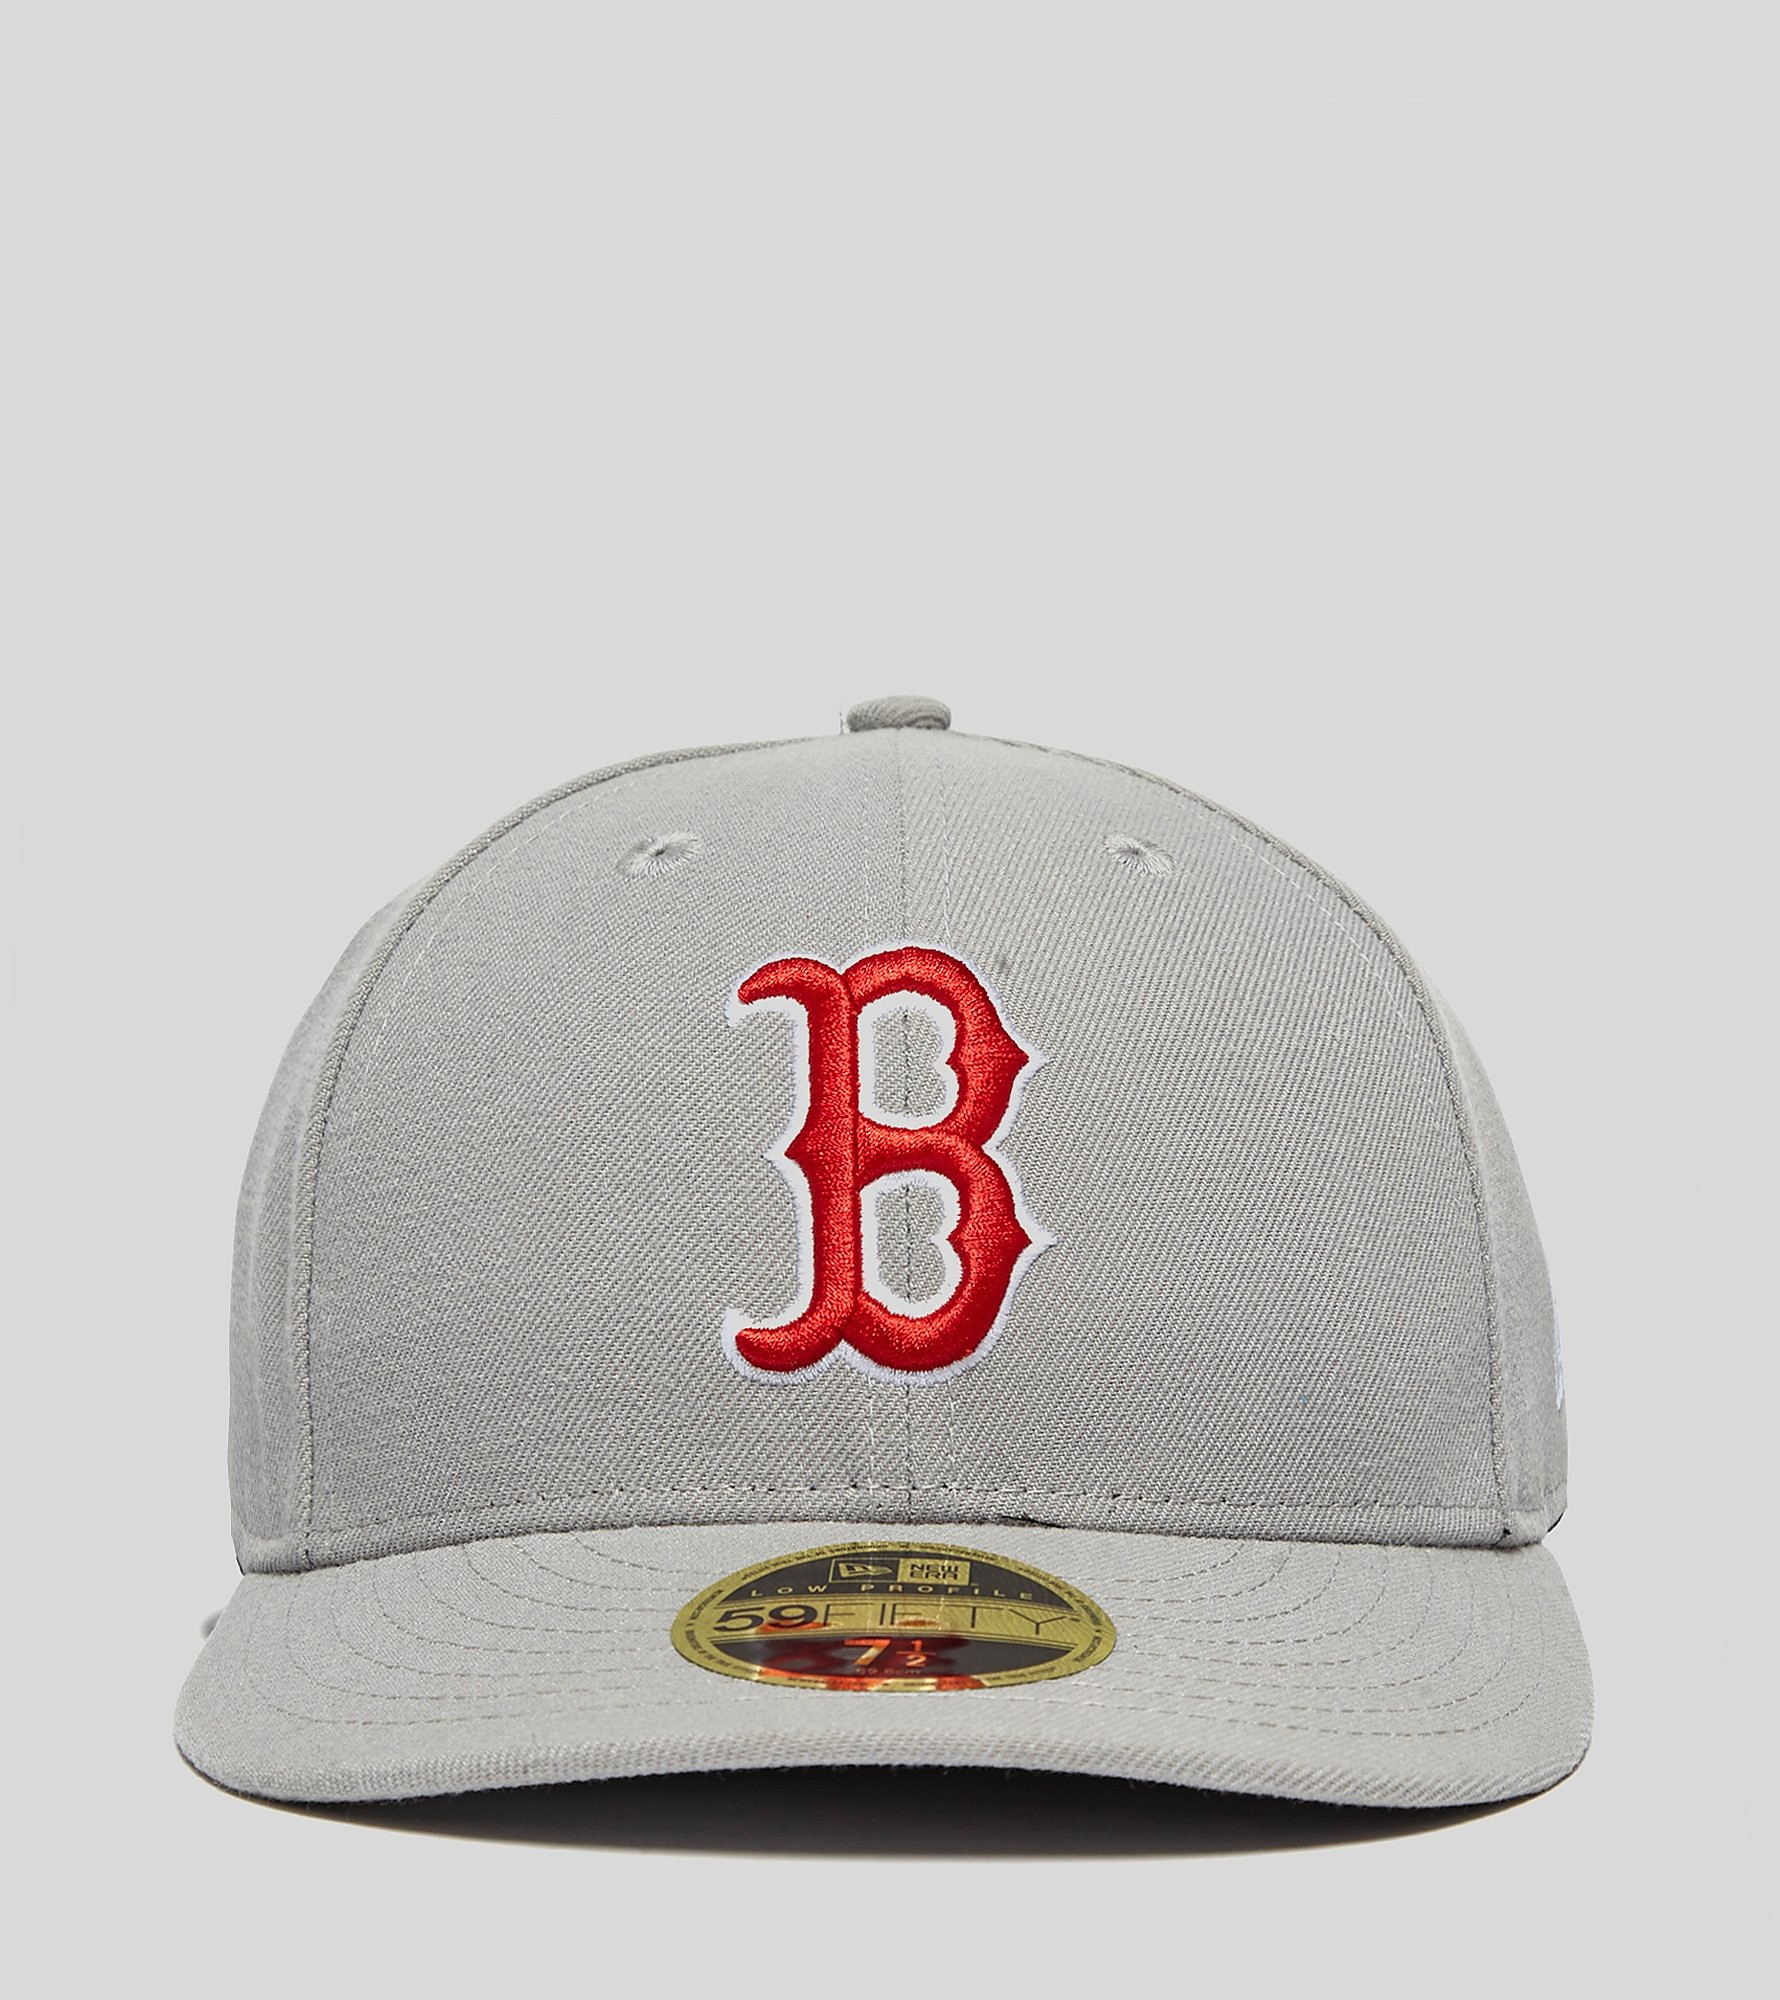 New Era 59FIFTY Low Profile Fitted Cap